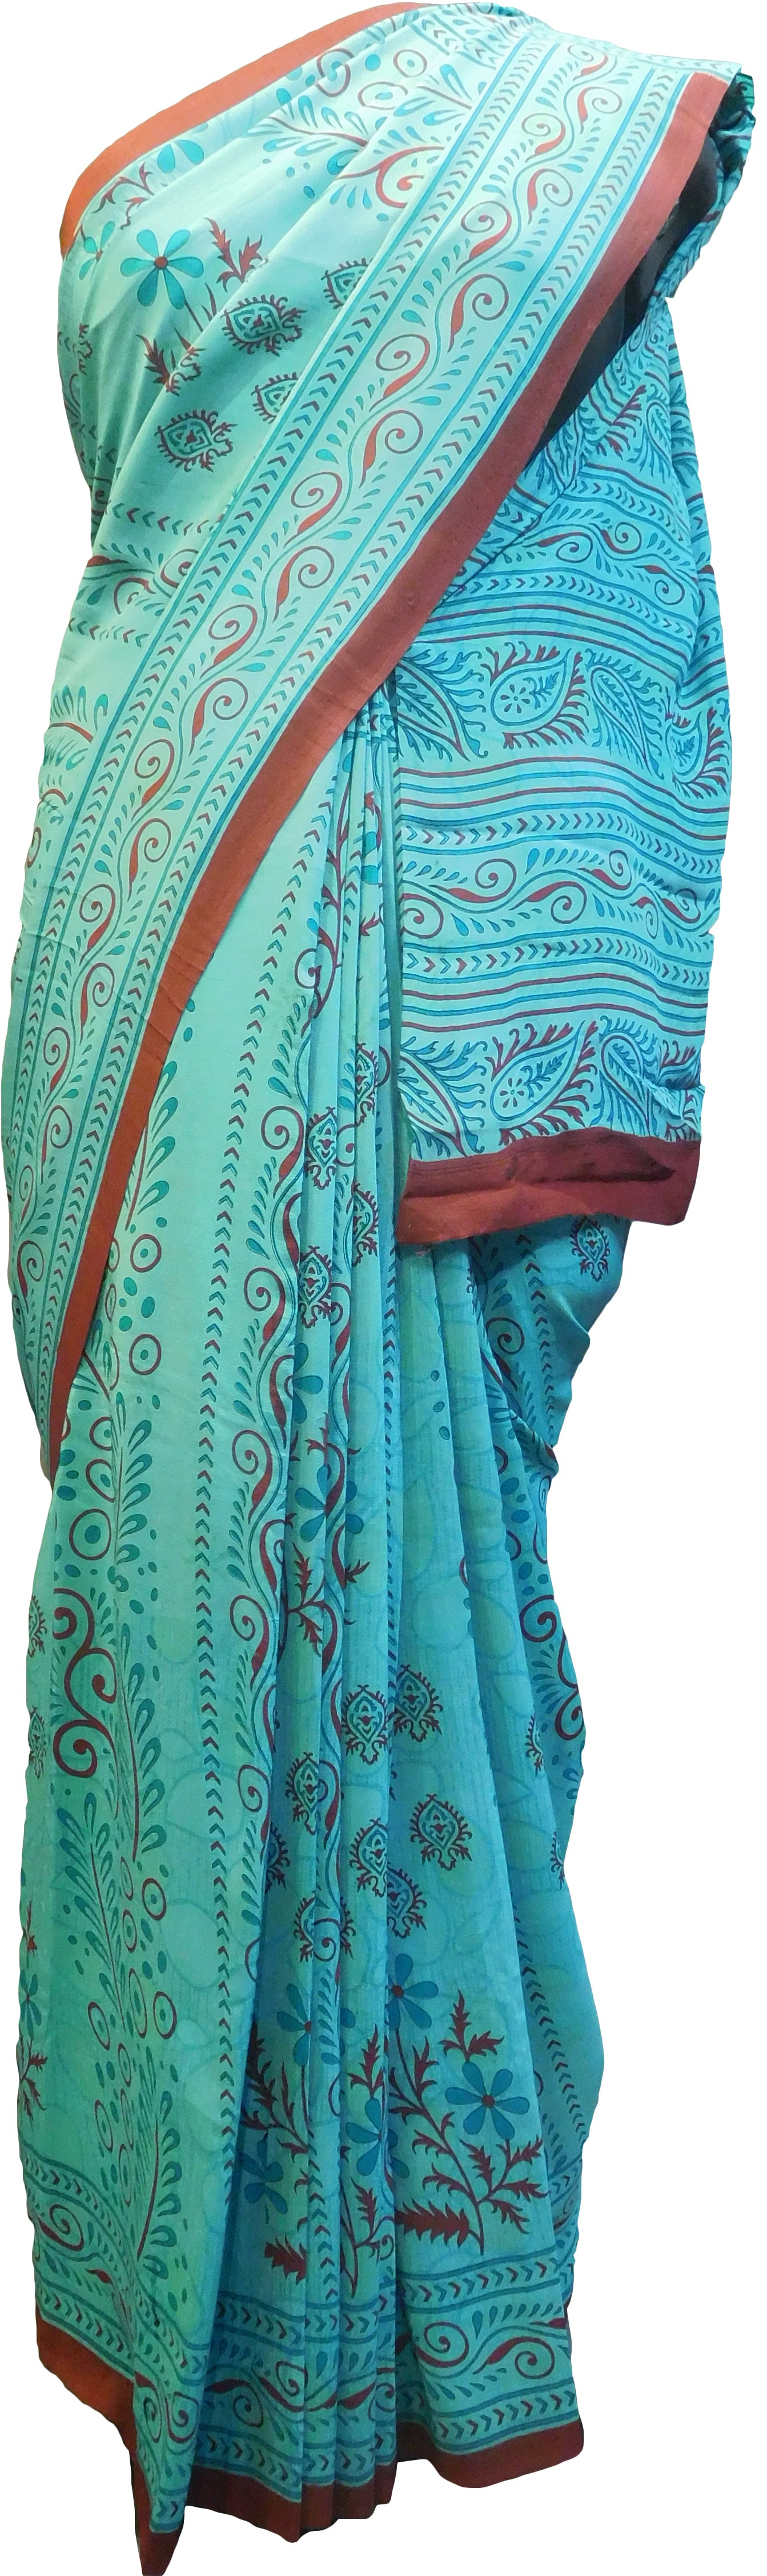 Multicolor Designer Wedding Partywear Pure Crepe Hand Brush Reprinted Kolkata Saree Sari RP262